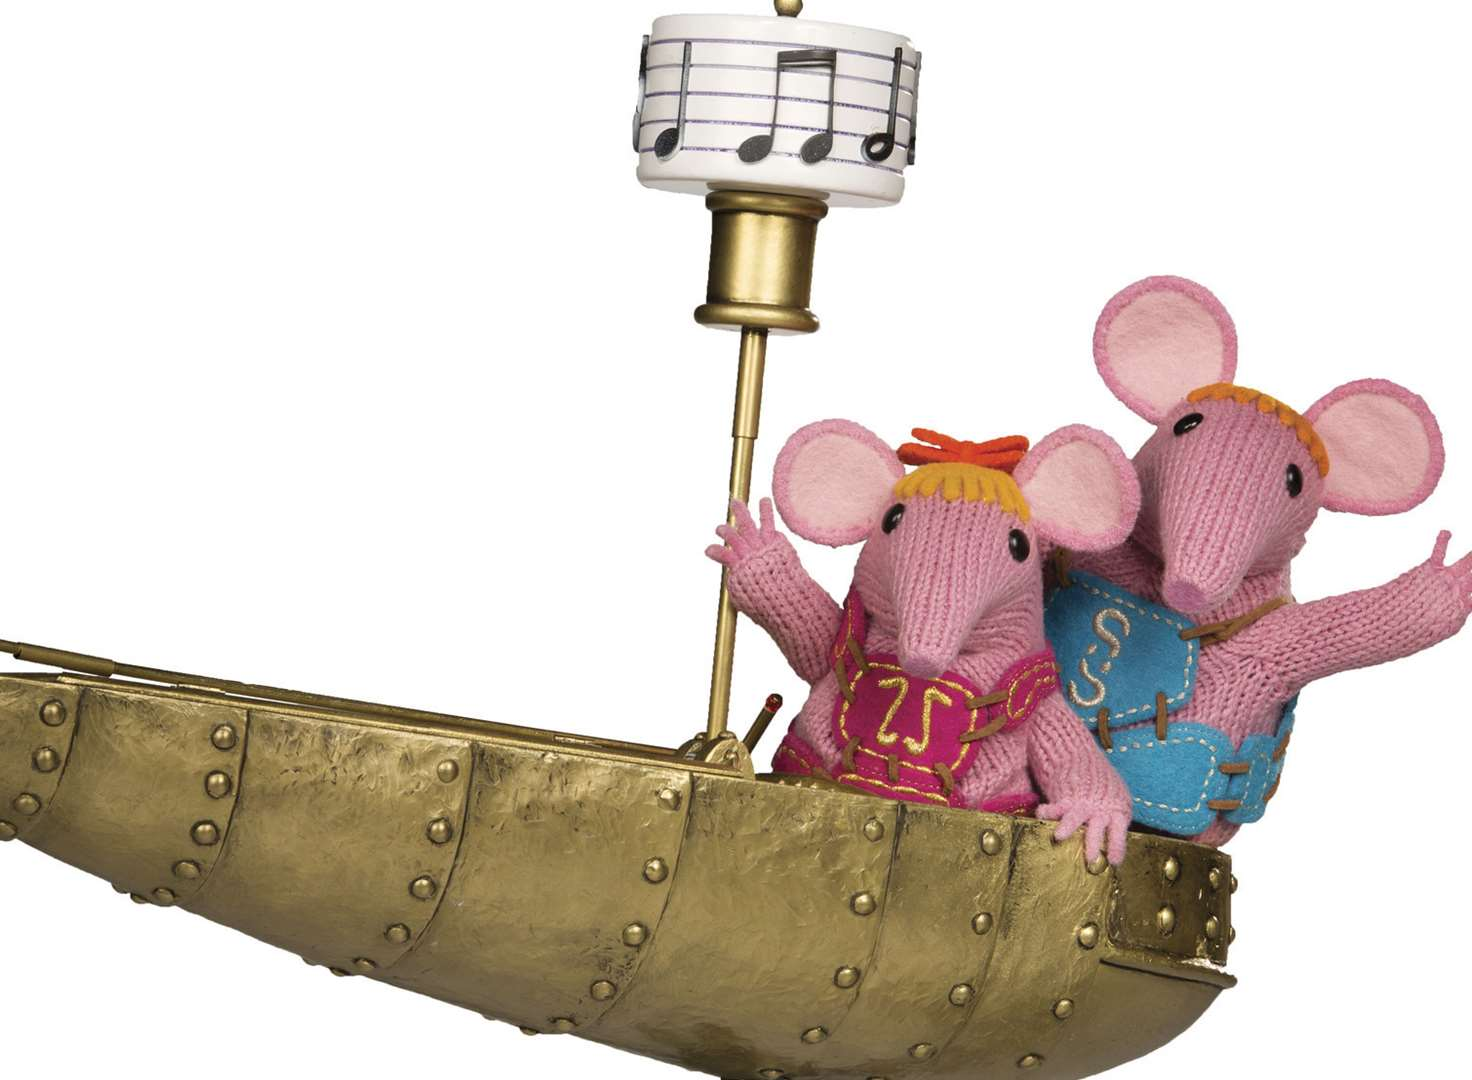 Bafta win for Clangers creator's son